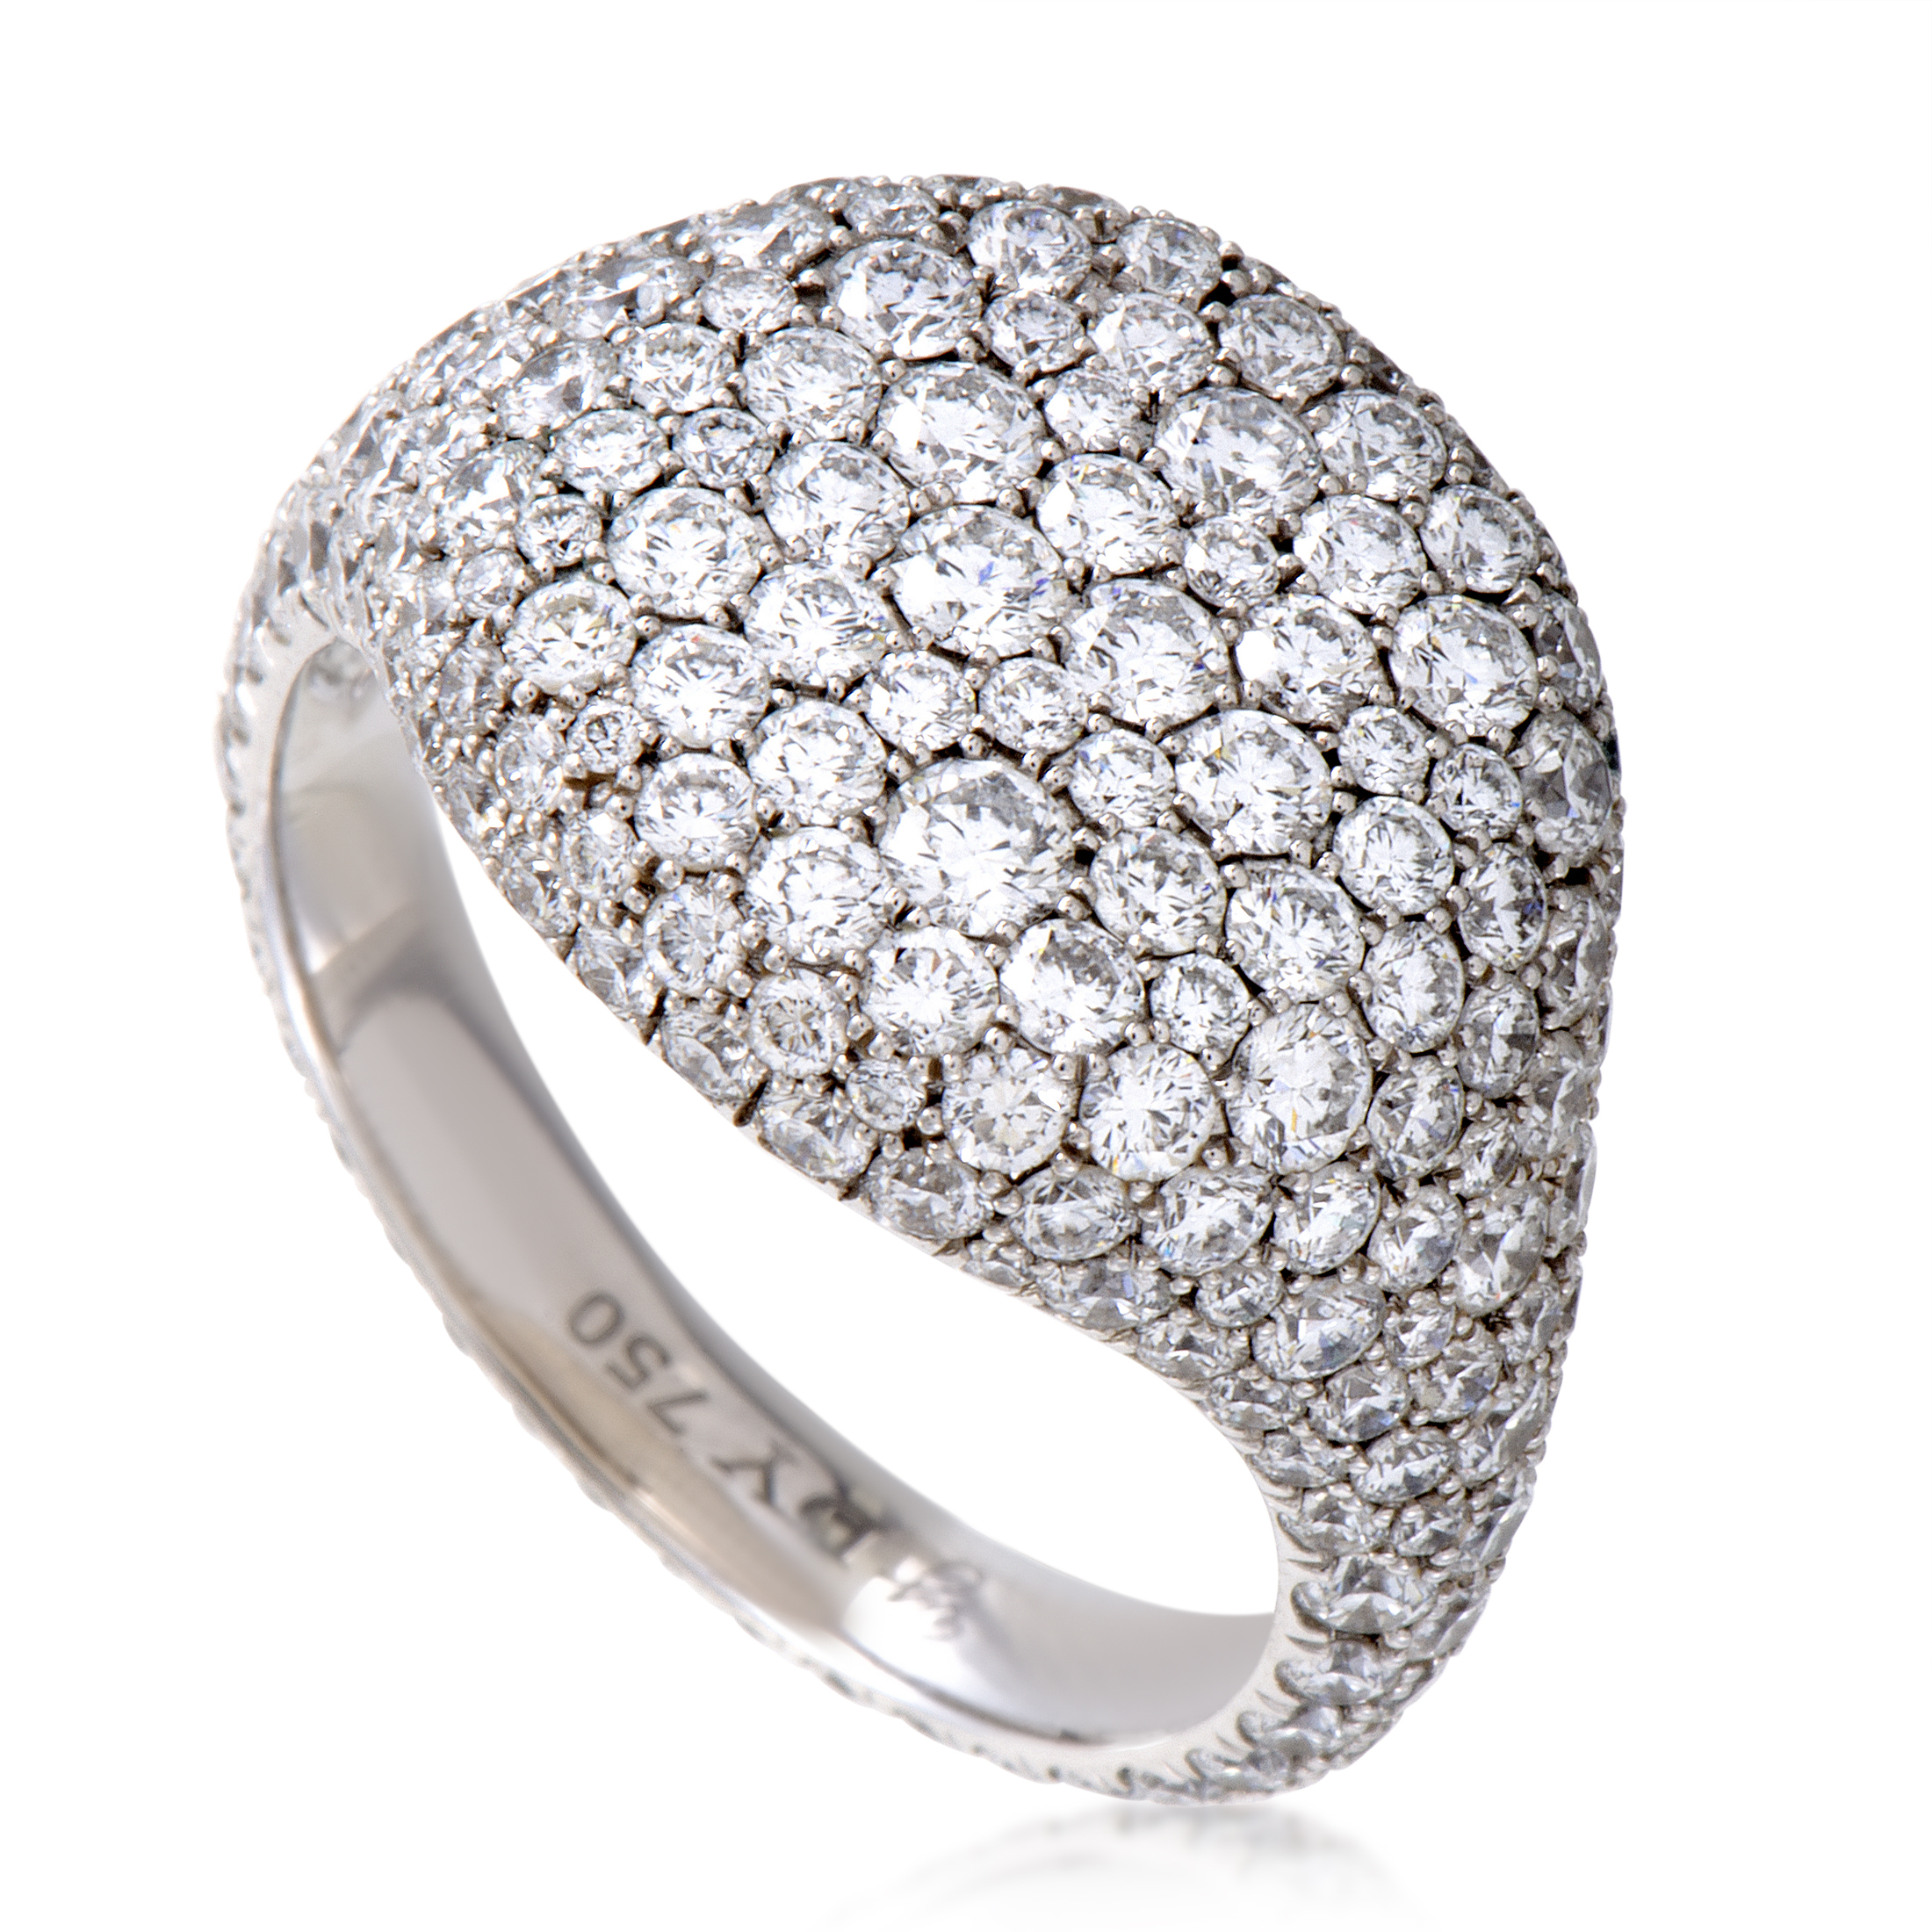 David Yurman Womens 18K White Gold Diamond Pave Pinky Ring